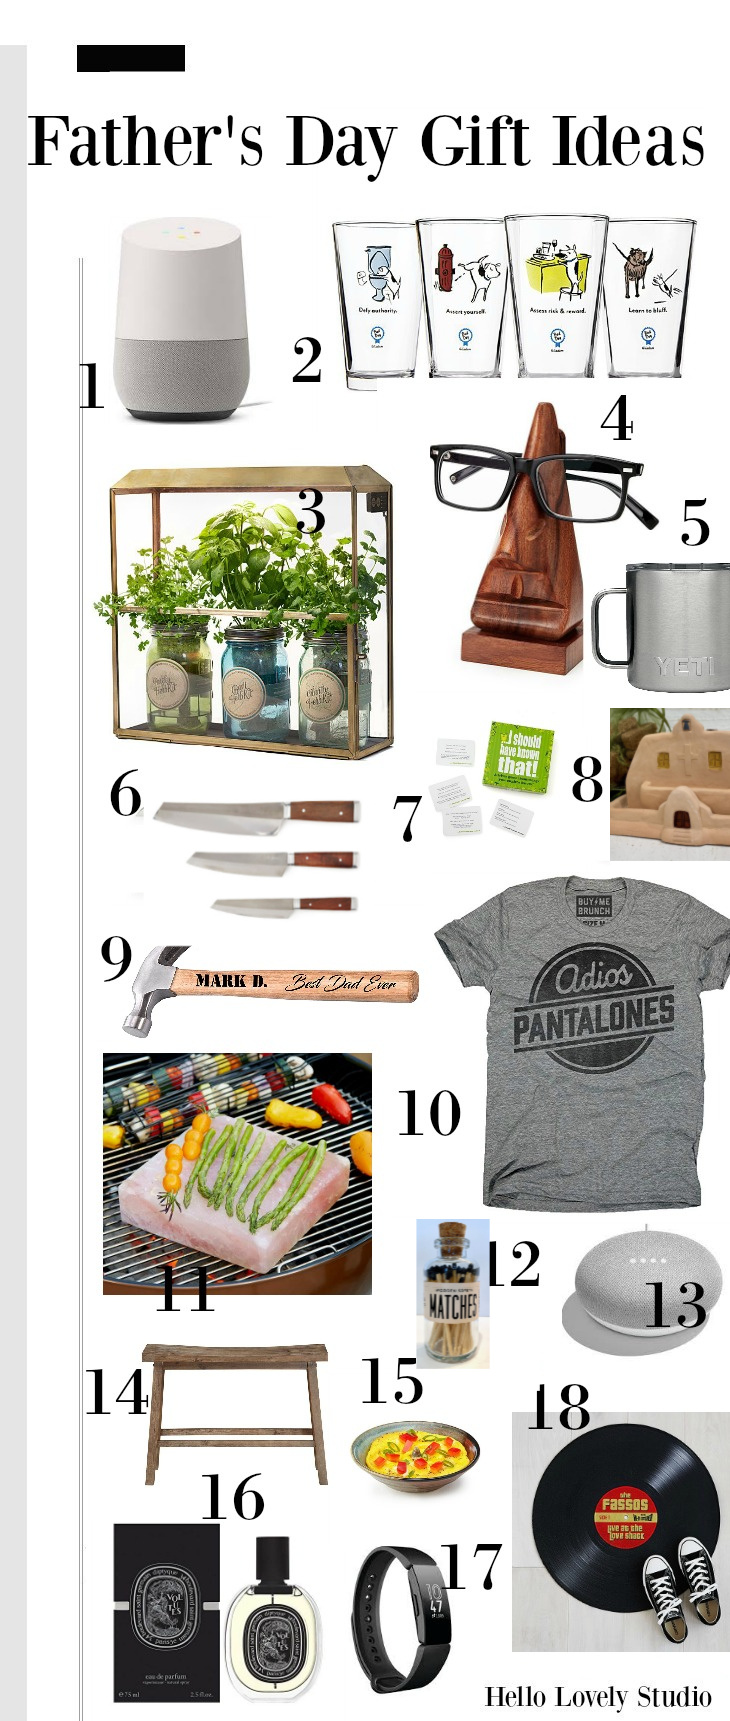 Father's Day gift idea guide - Hello Lovely Studio. #giftguides #fathersday #hellolovelystudio